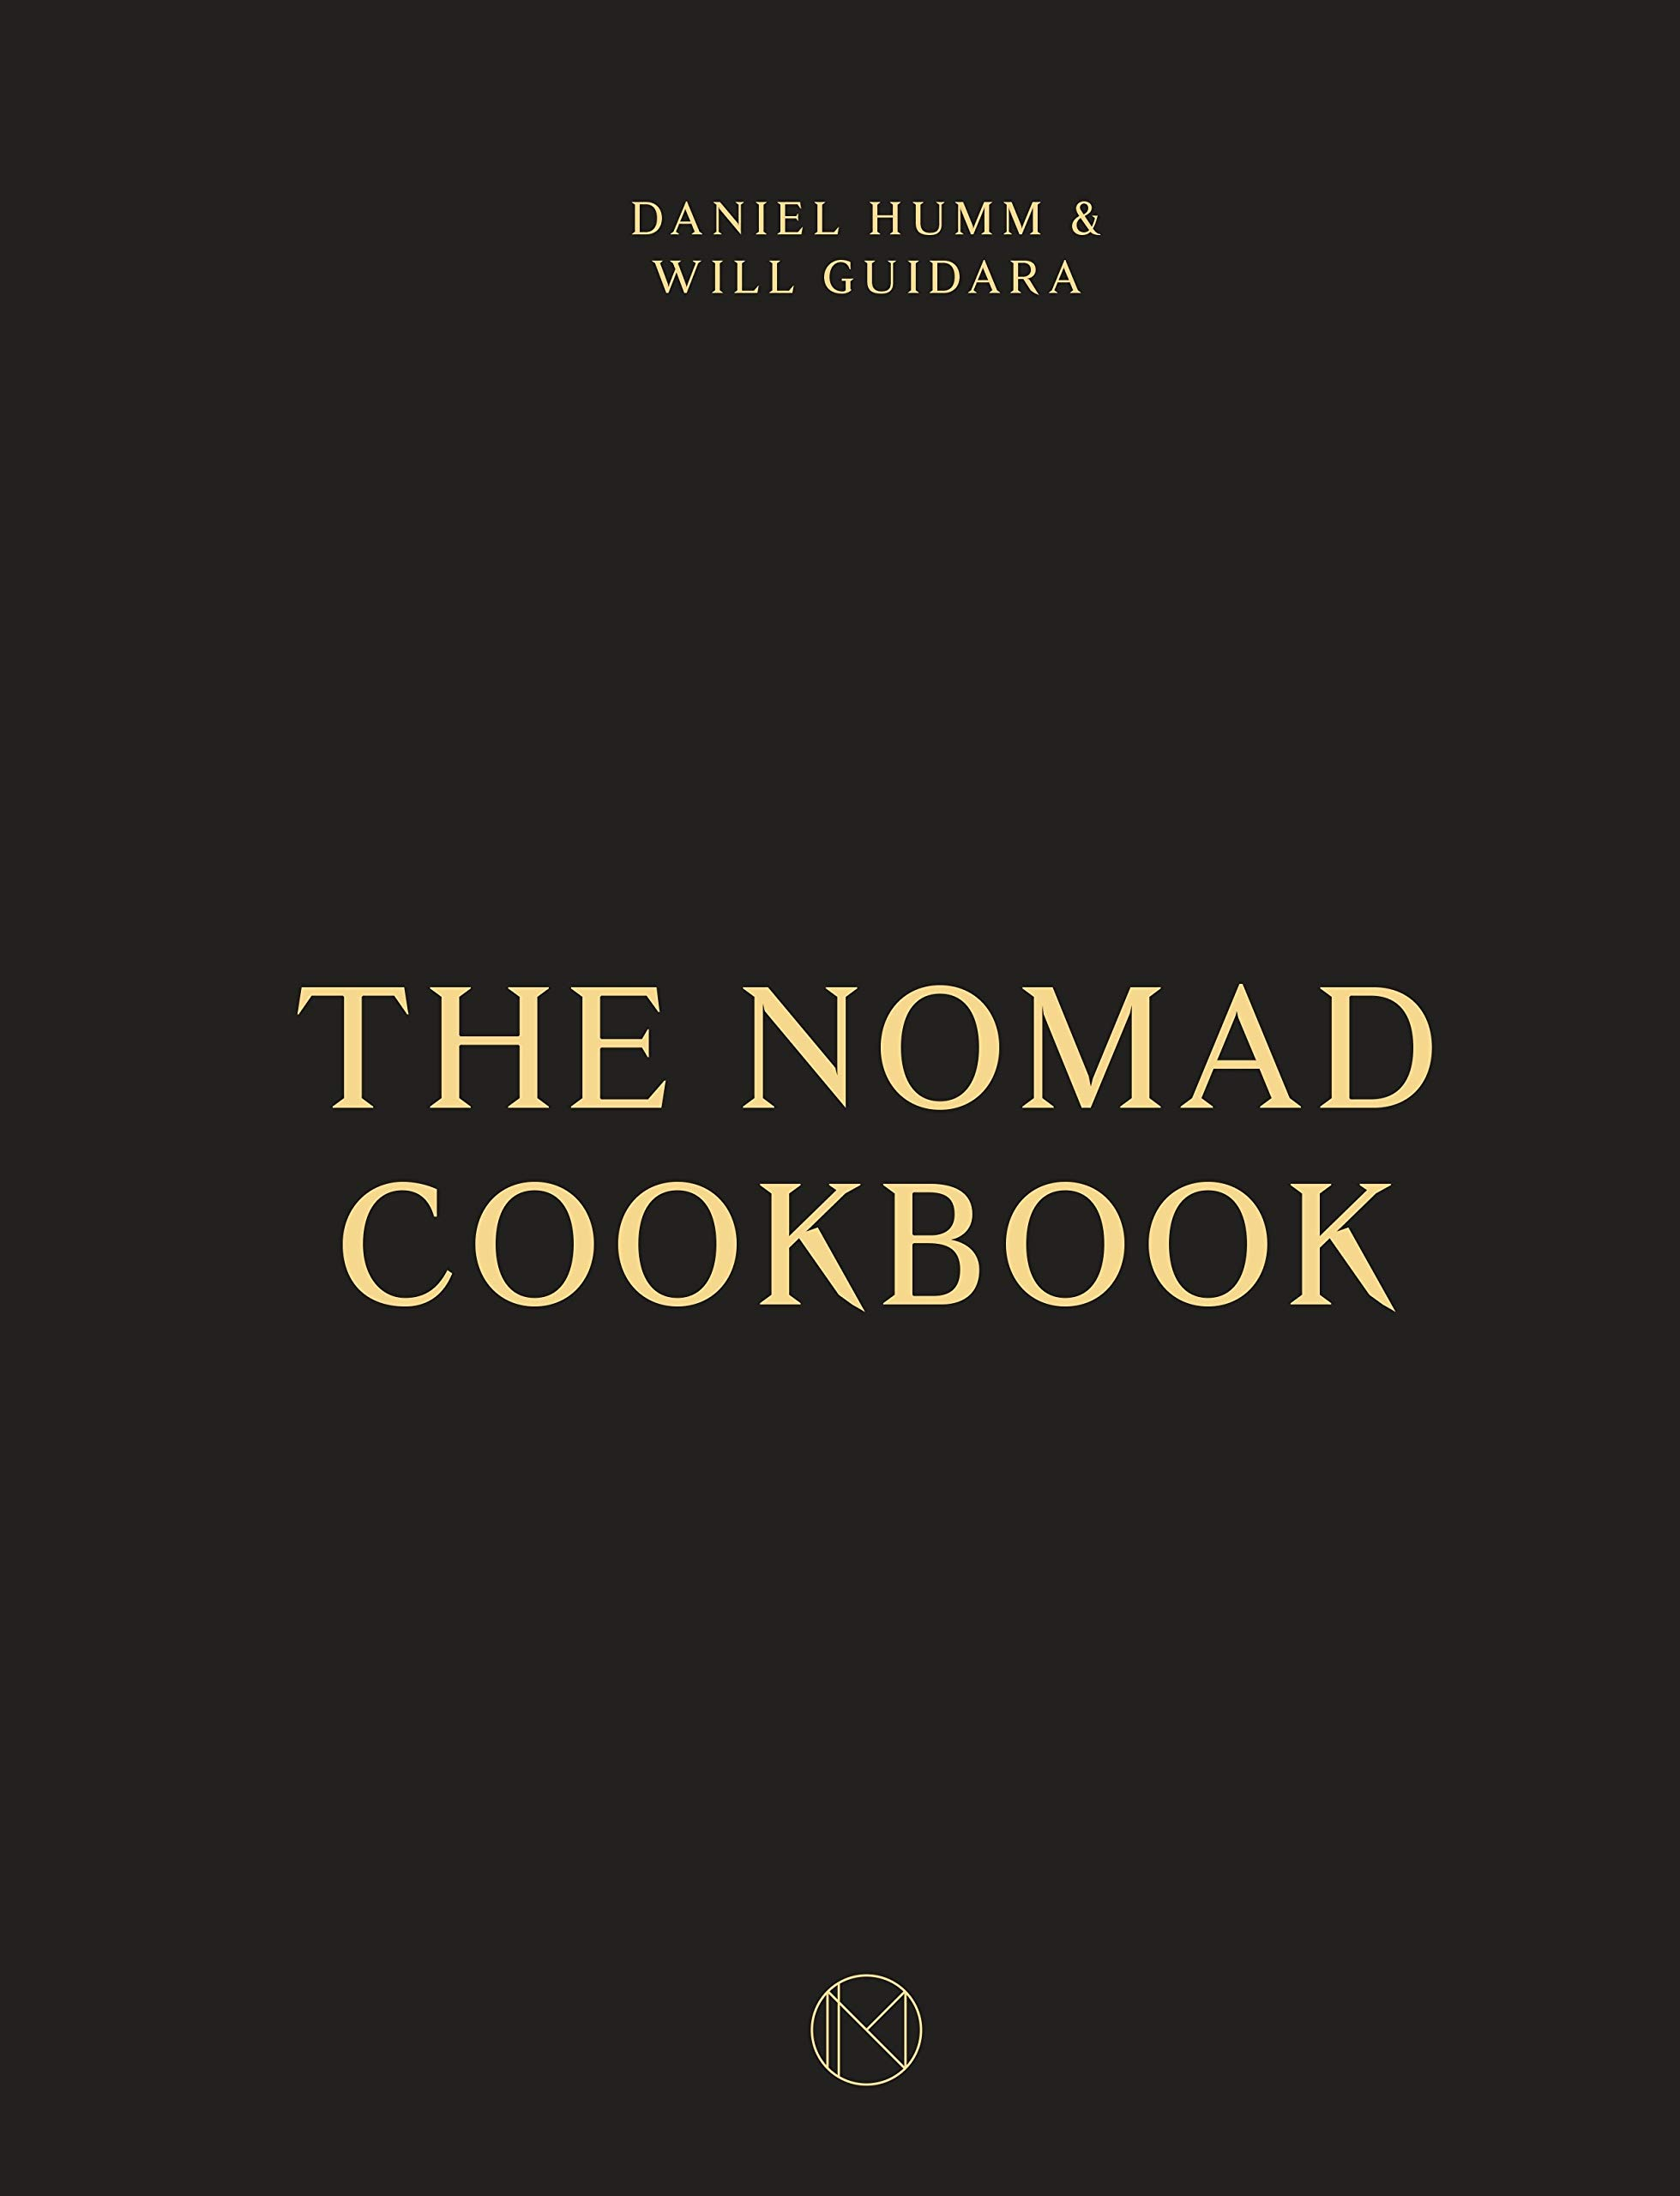 Image OfThe NoMad Cookbook